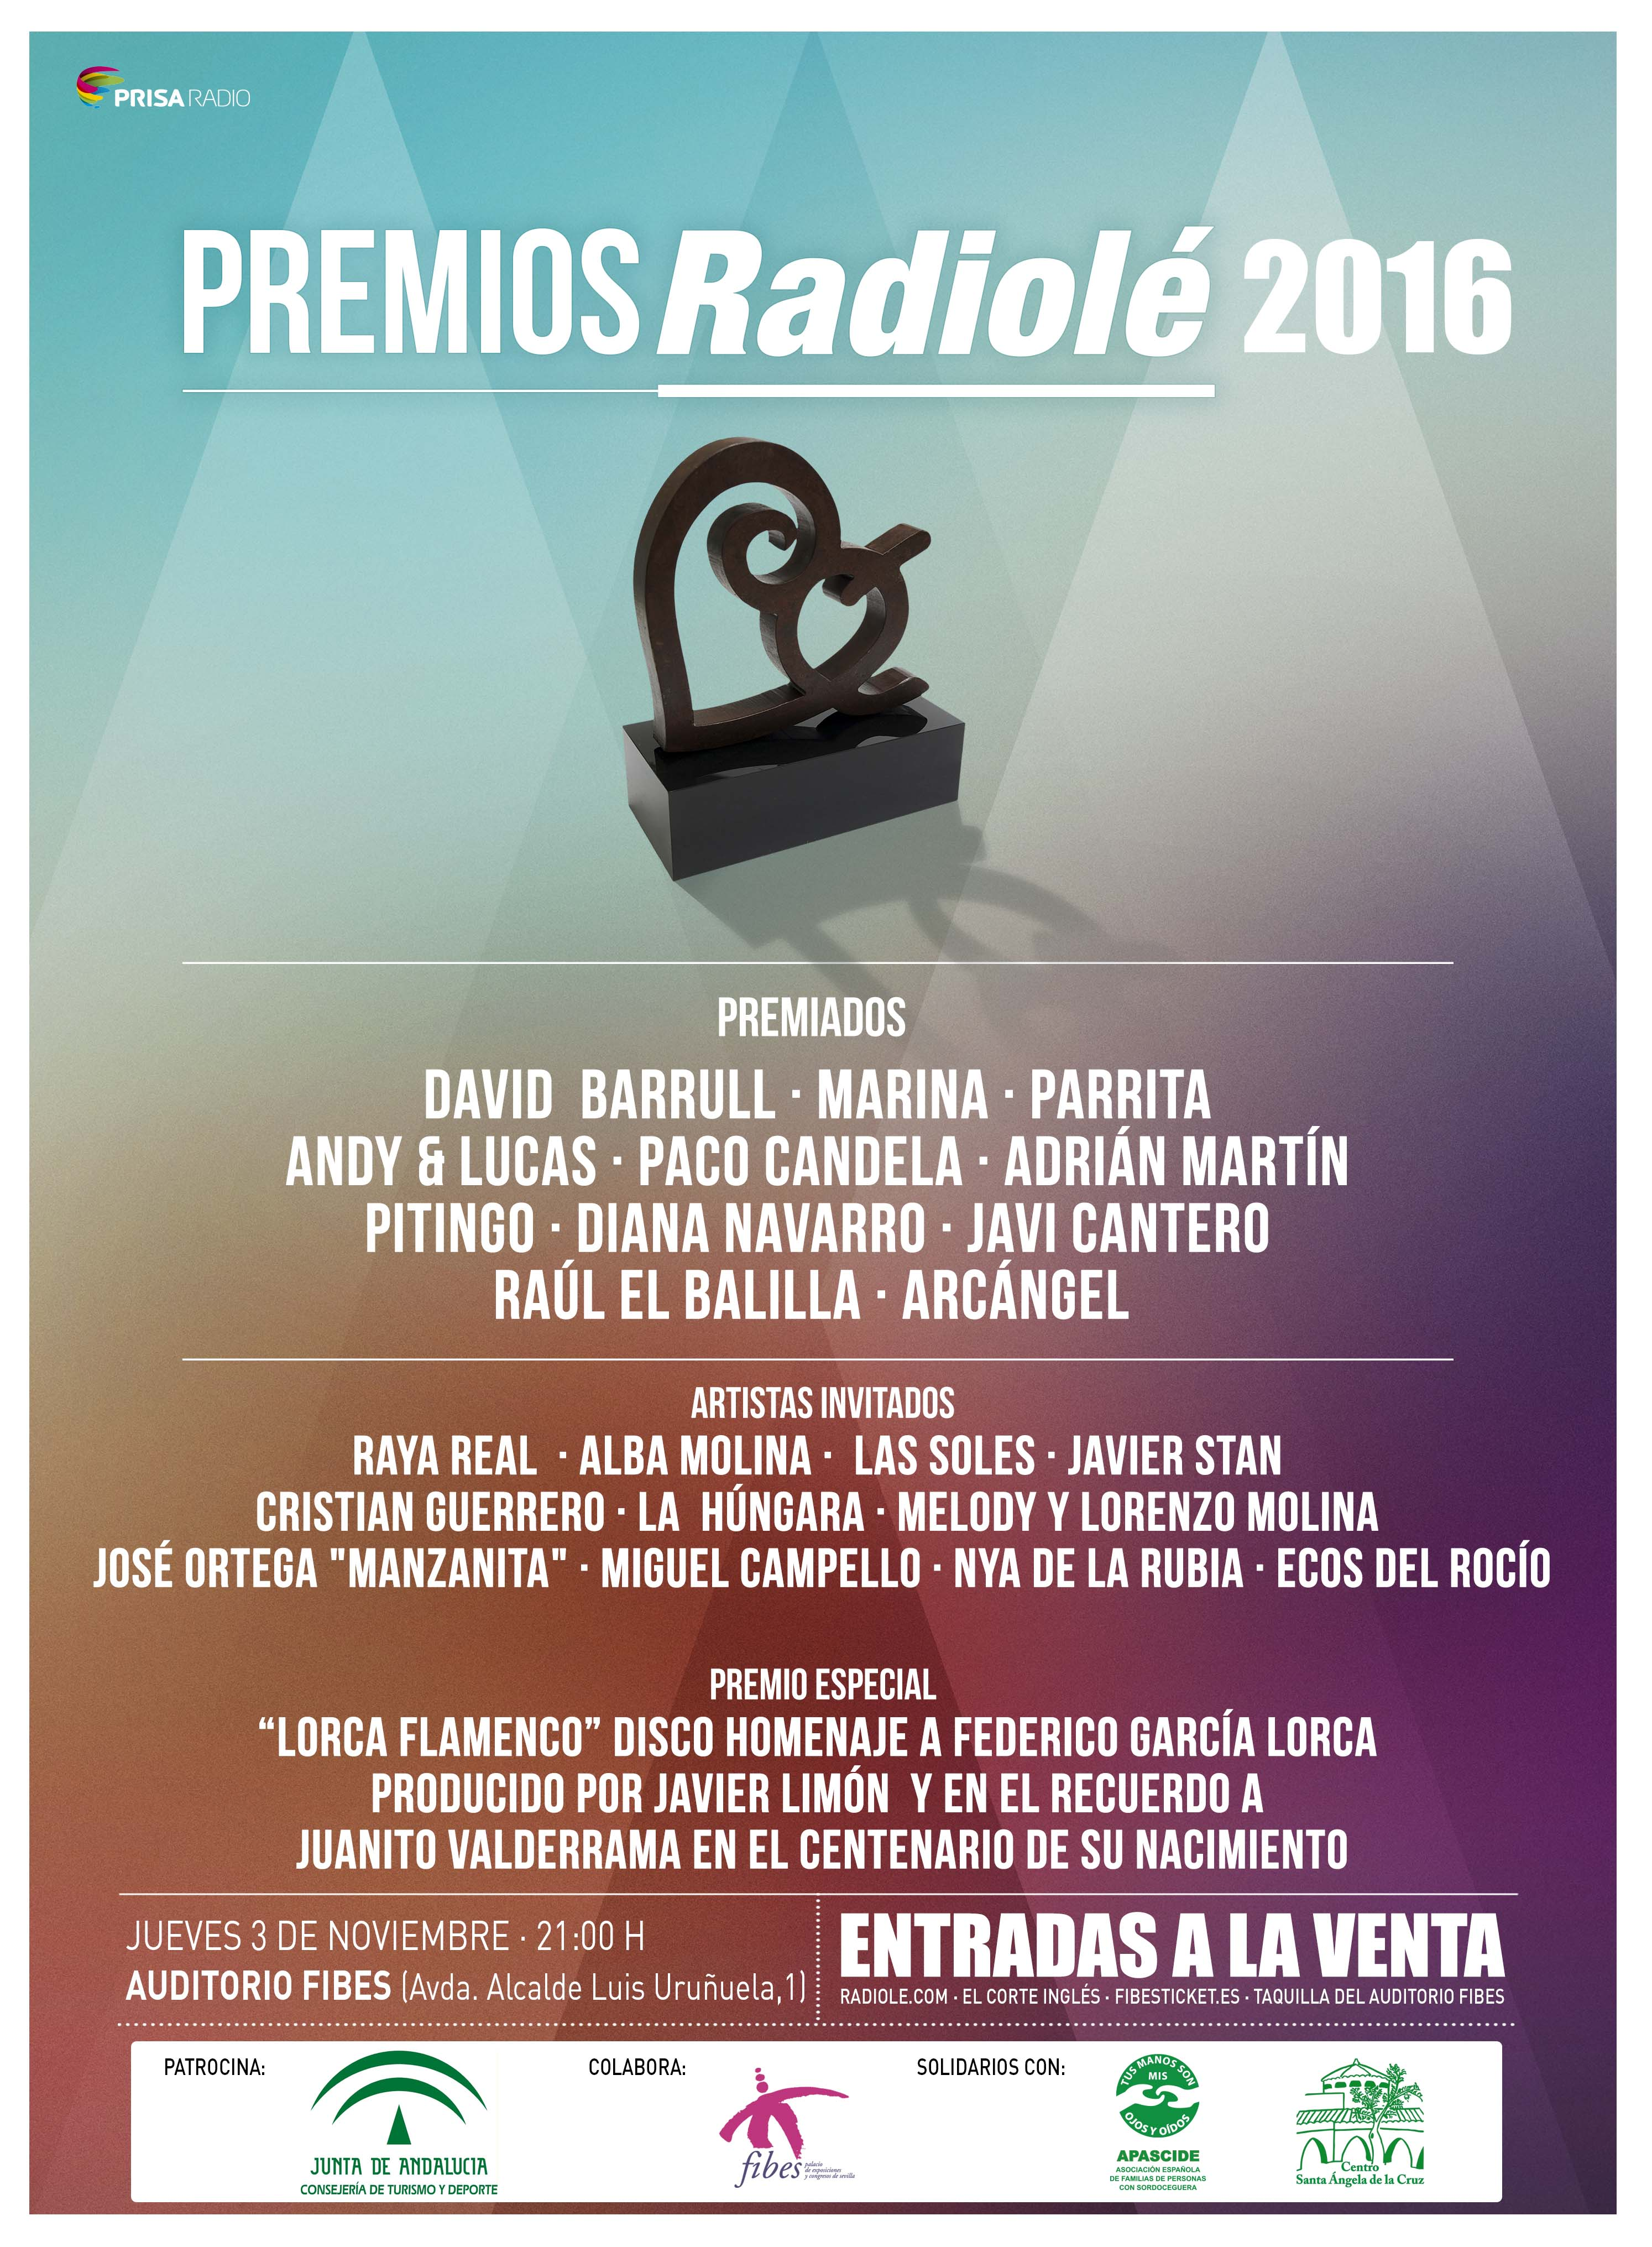 premiosradiole_2016_redes